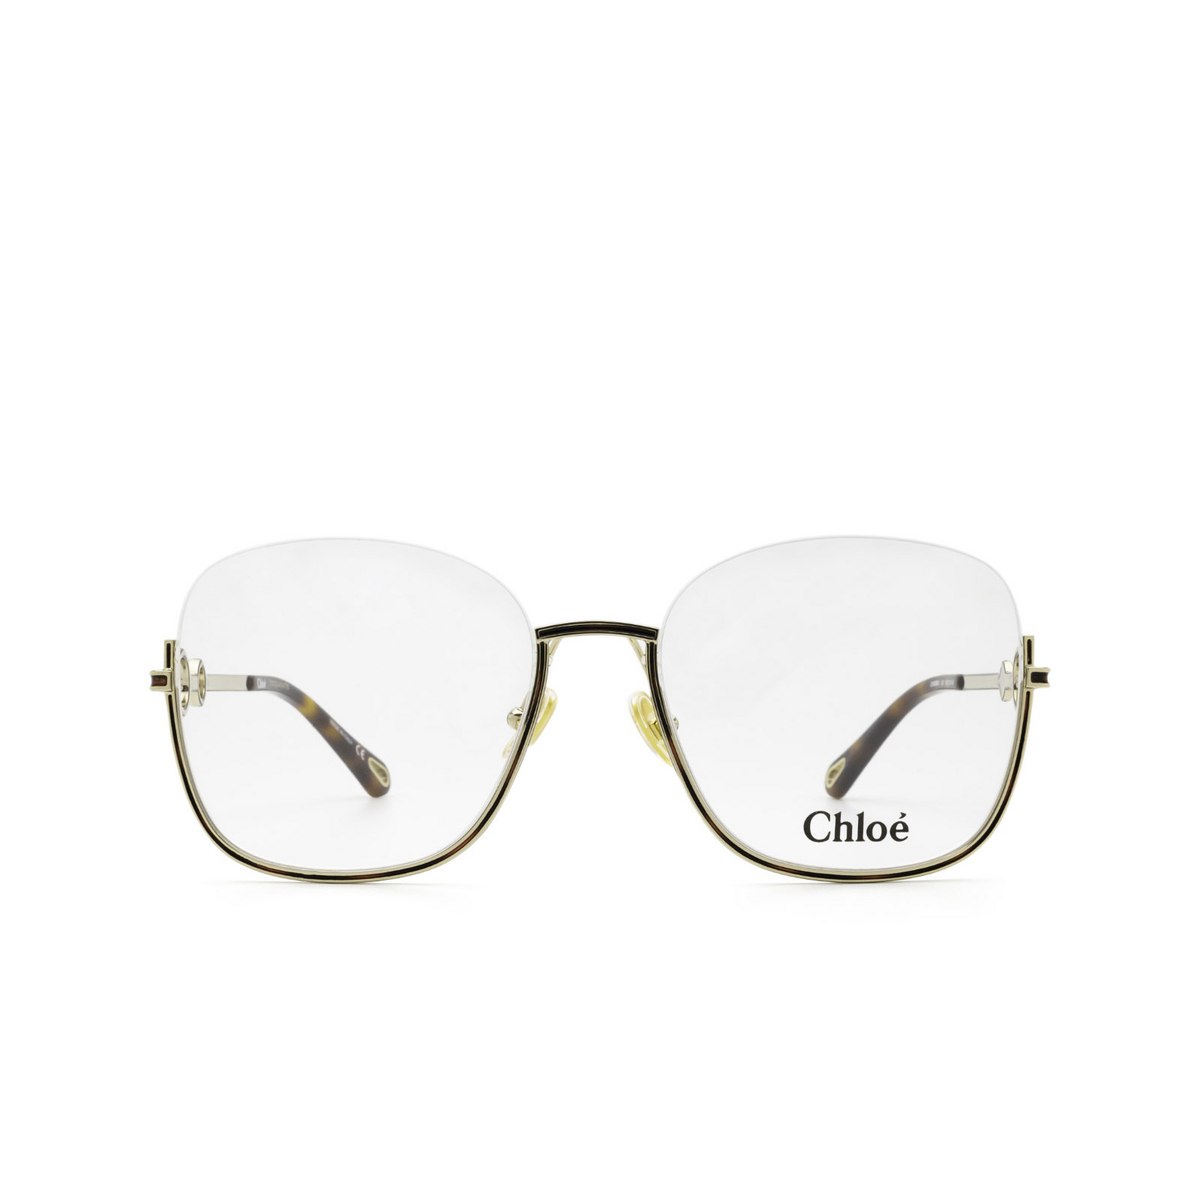 Chloé® Square Eyeglasses: CH0069O color Gold 001 - front view.